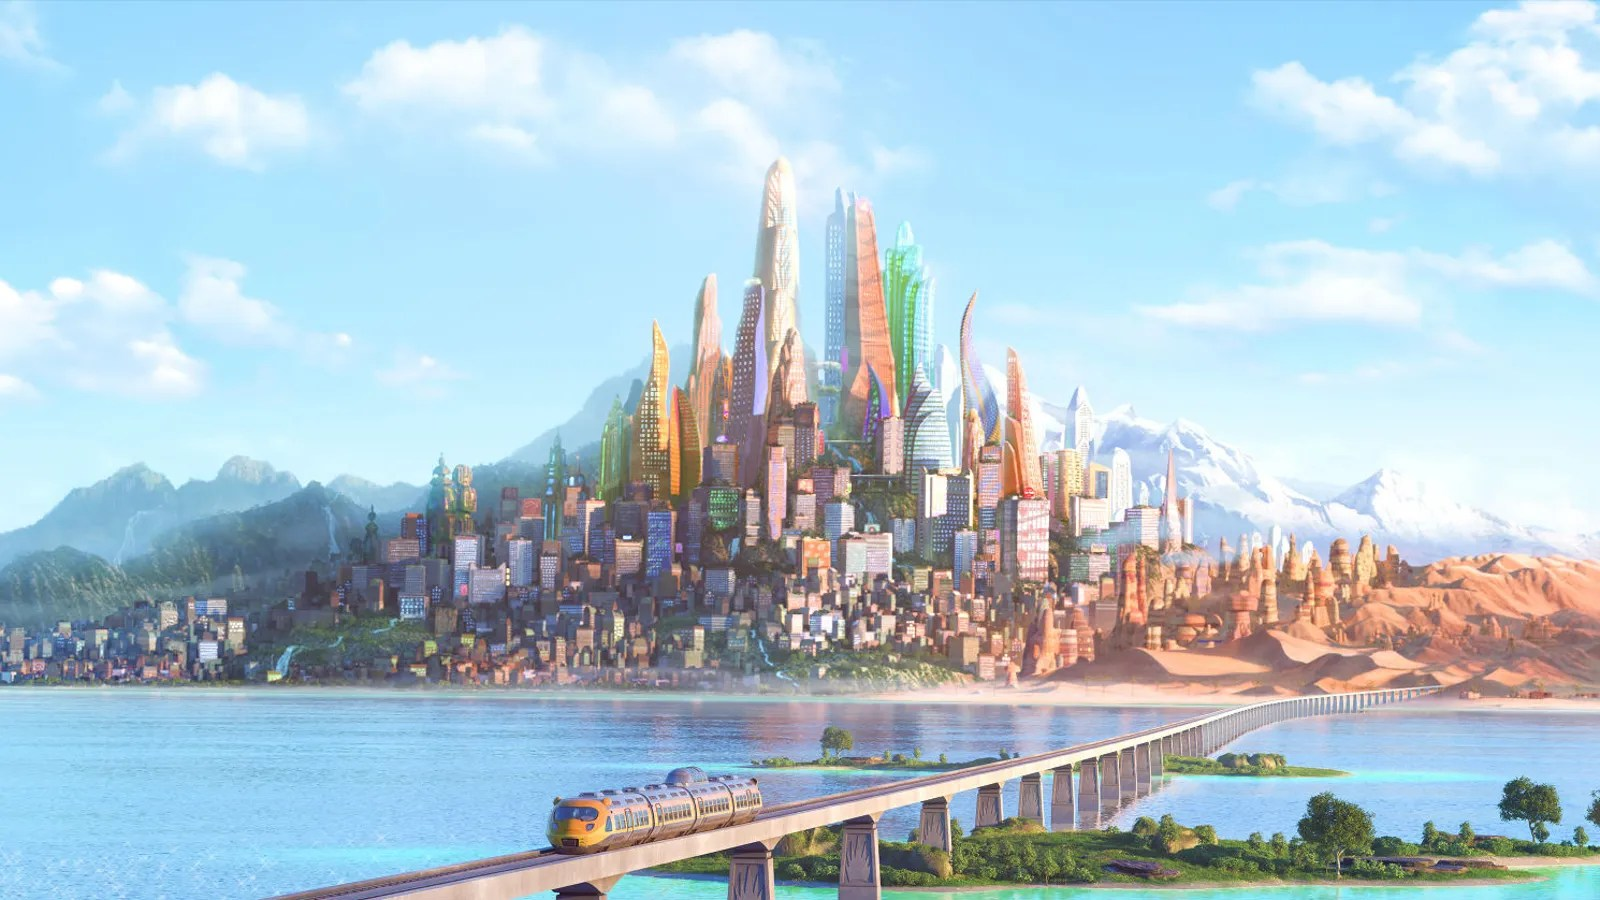 Zootopia Iphone Wallpaper This Beautiful Zootopia Concept Art Explains How All